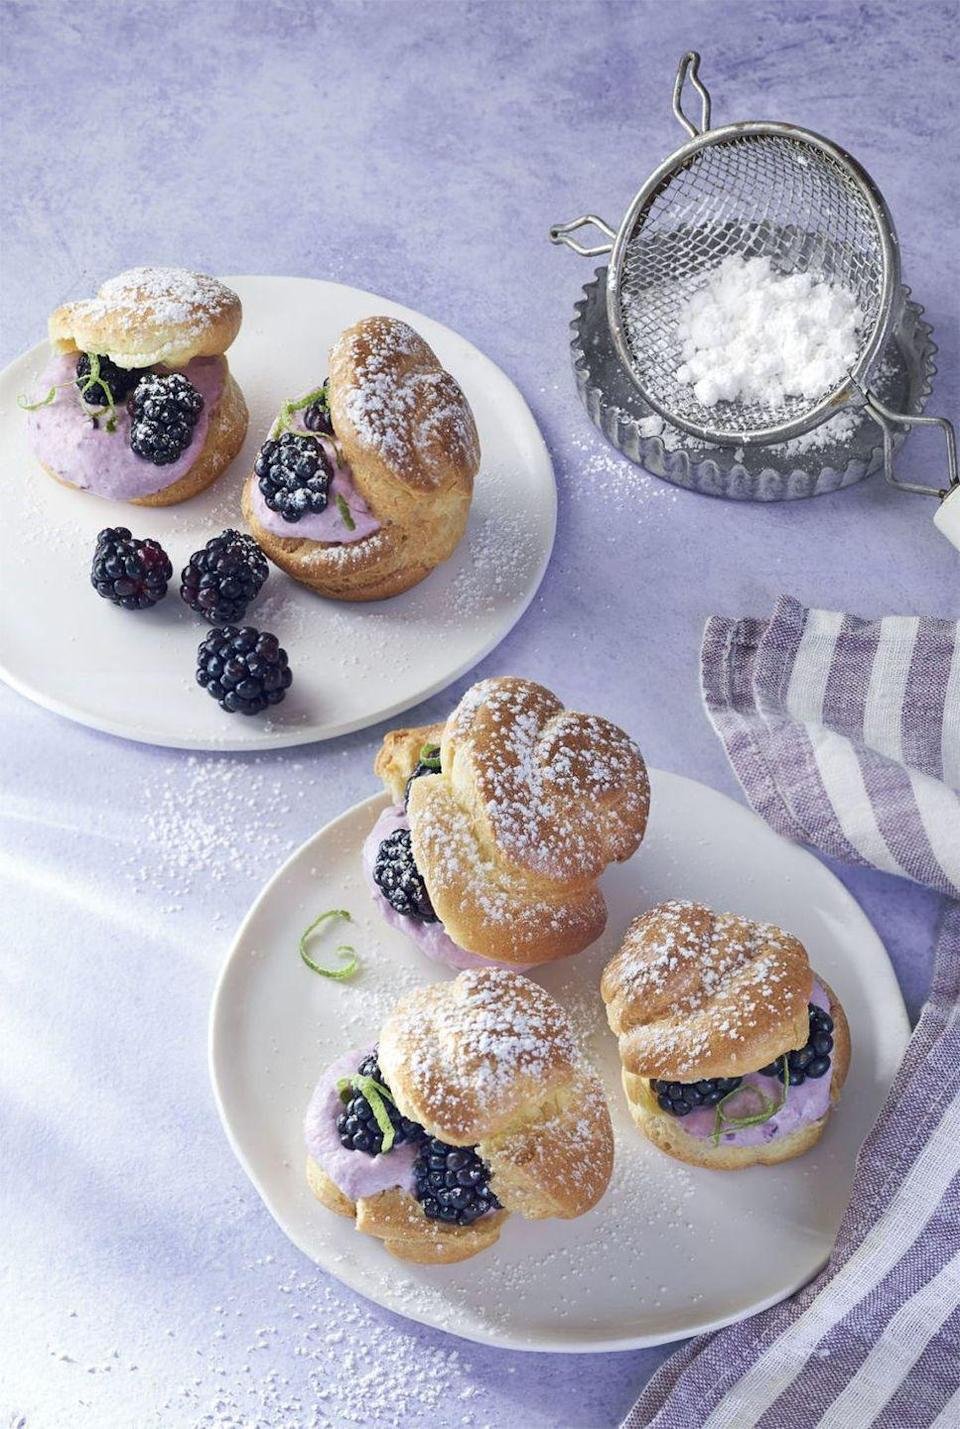 """<p>Use store-bought profiterole shells to keep this dessert quick n' easy (and no sweat!).</p><p><em><a href=""""https://www.countryliving.com/food-drinks/recipes/a41985/blackberry-lime-cream-puffs-recipe/"""" rel=""""nofollow noopener"""" target=""""_blank"""" data-ylk=""""slk:Get the recipe from Country Living »"""" class=""""link rapid-noclick-resp"""">Get the recipe from Country Living »</a></em></p>"""